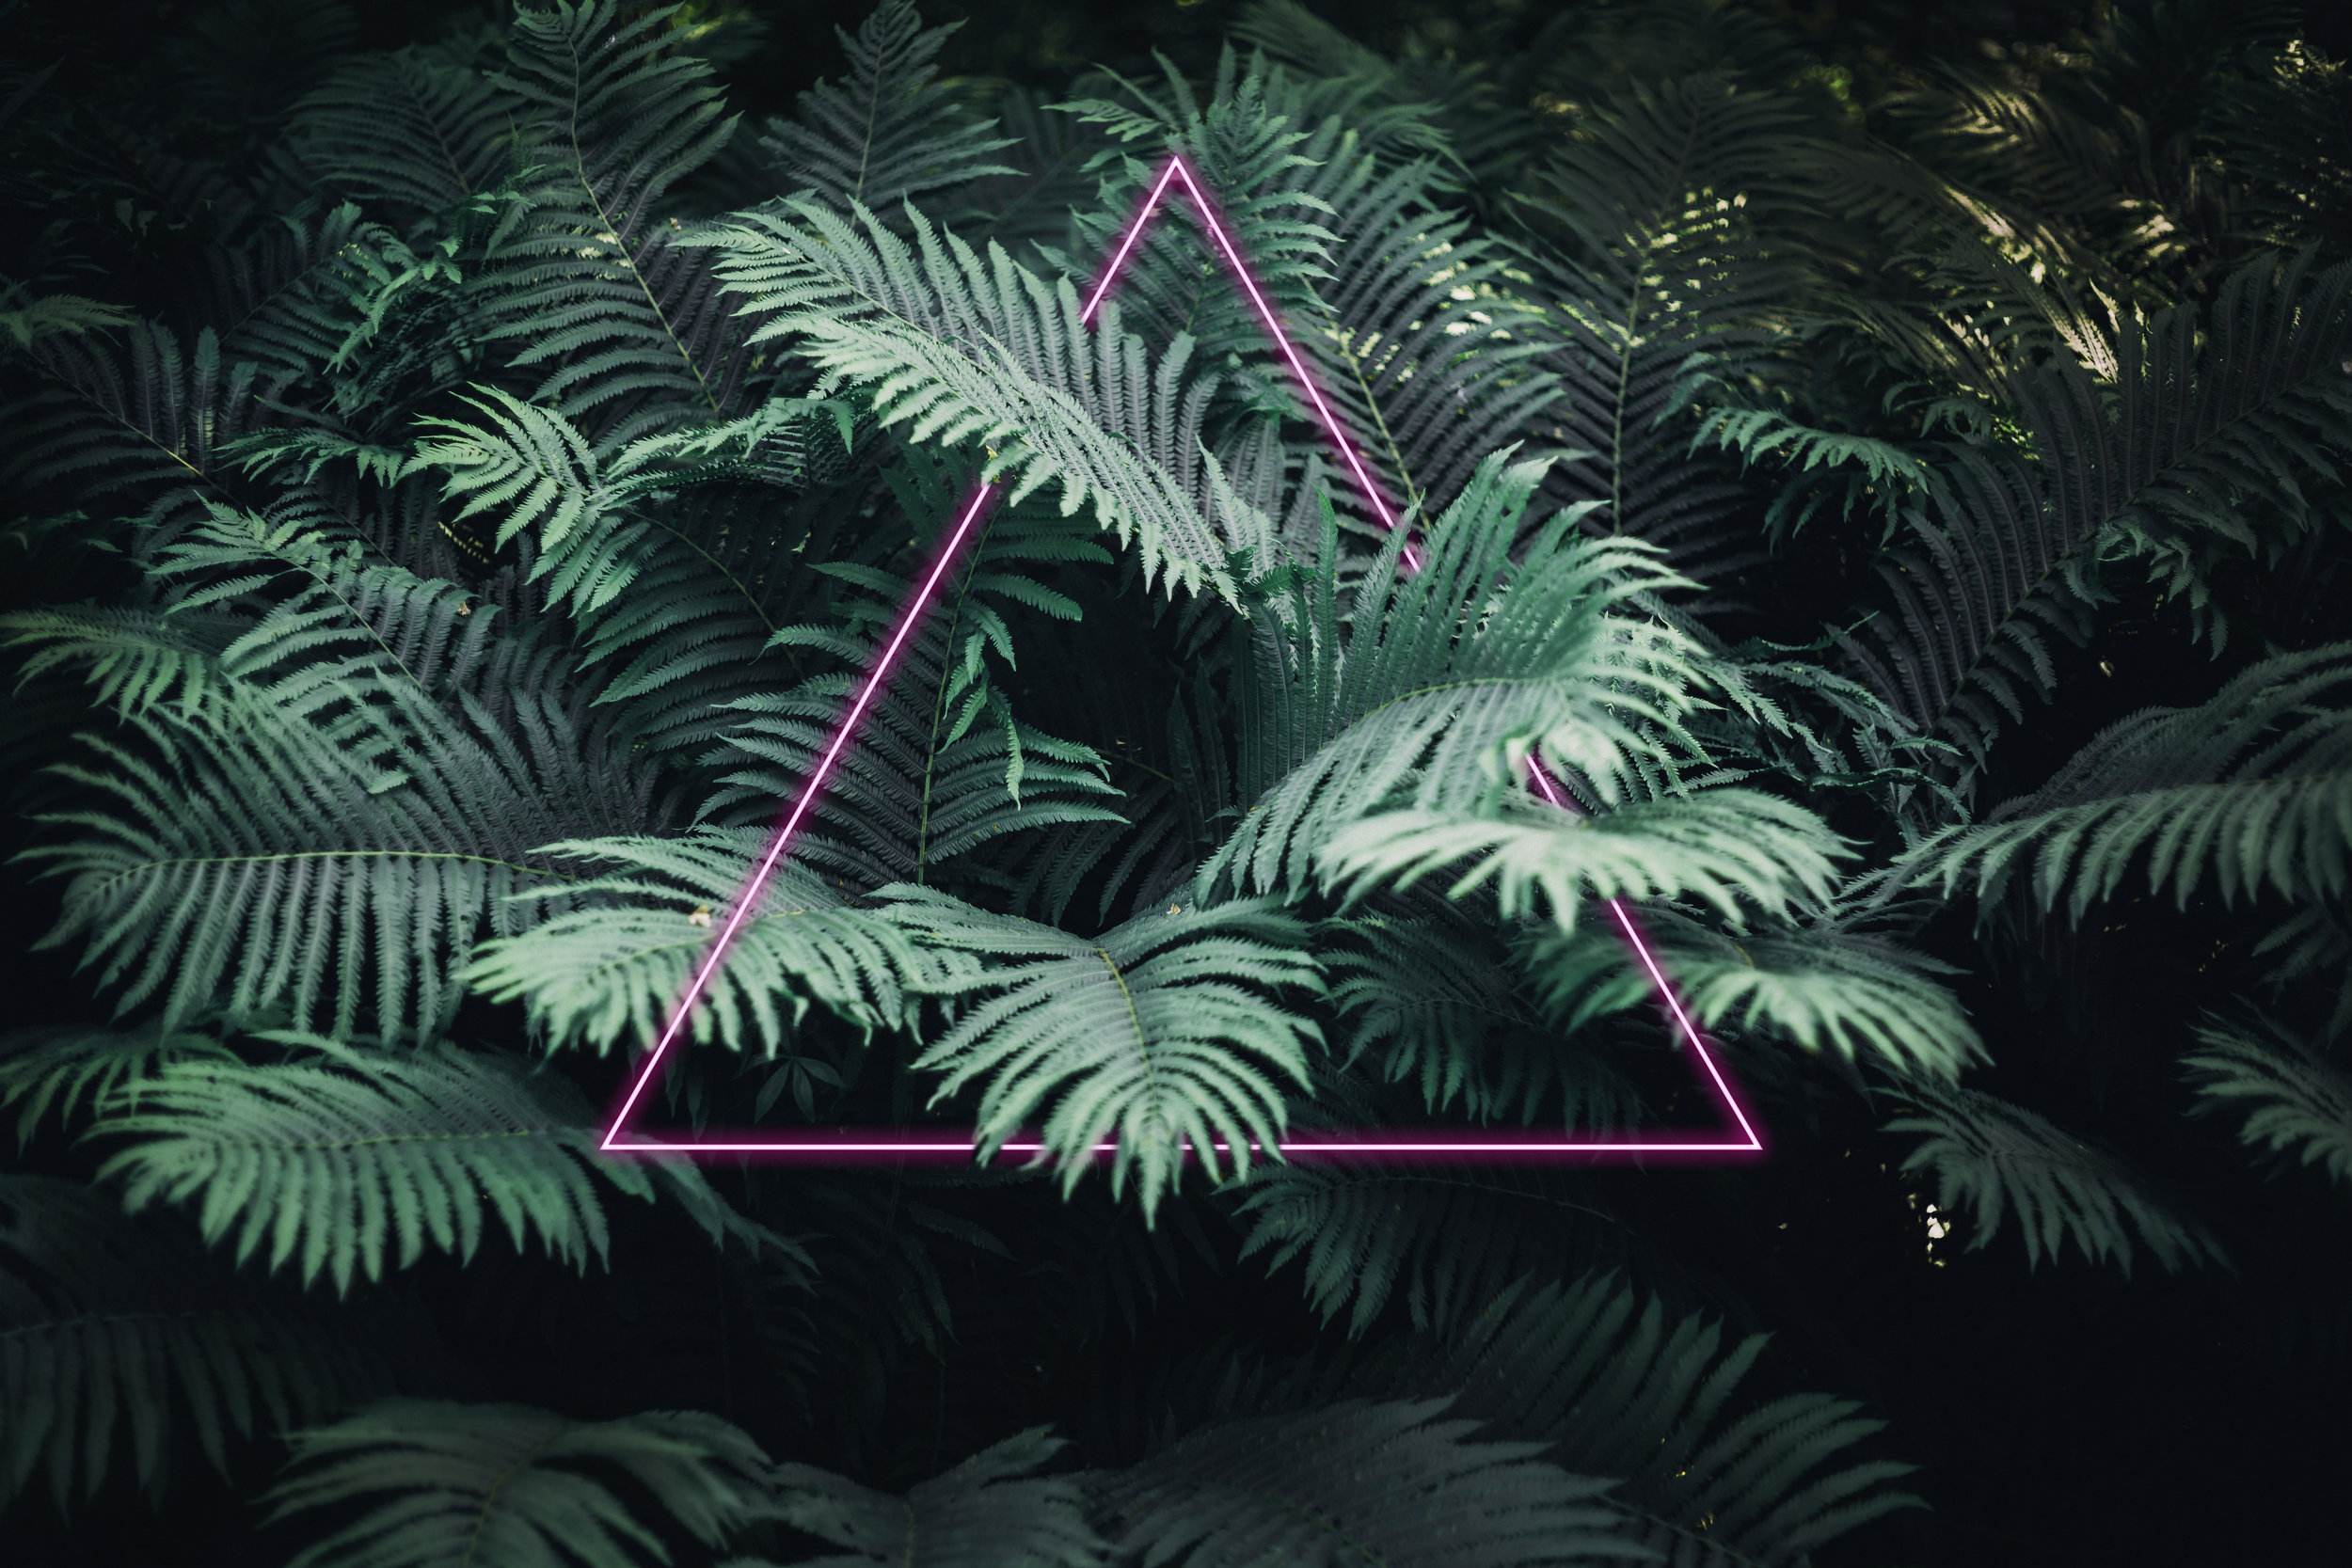 ferns with neon triangle.jpg